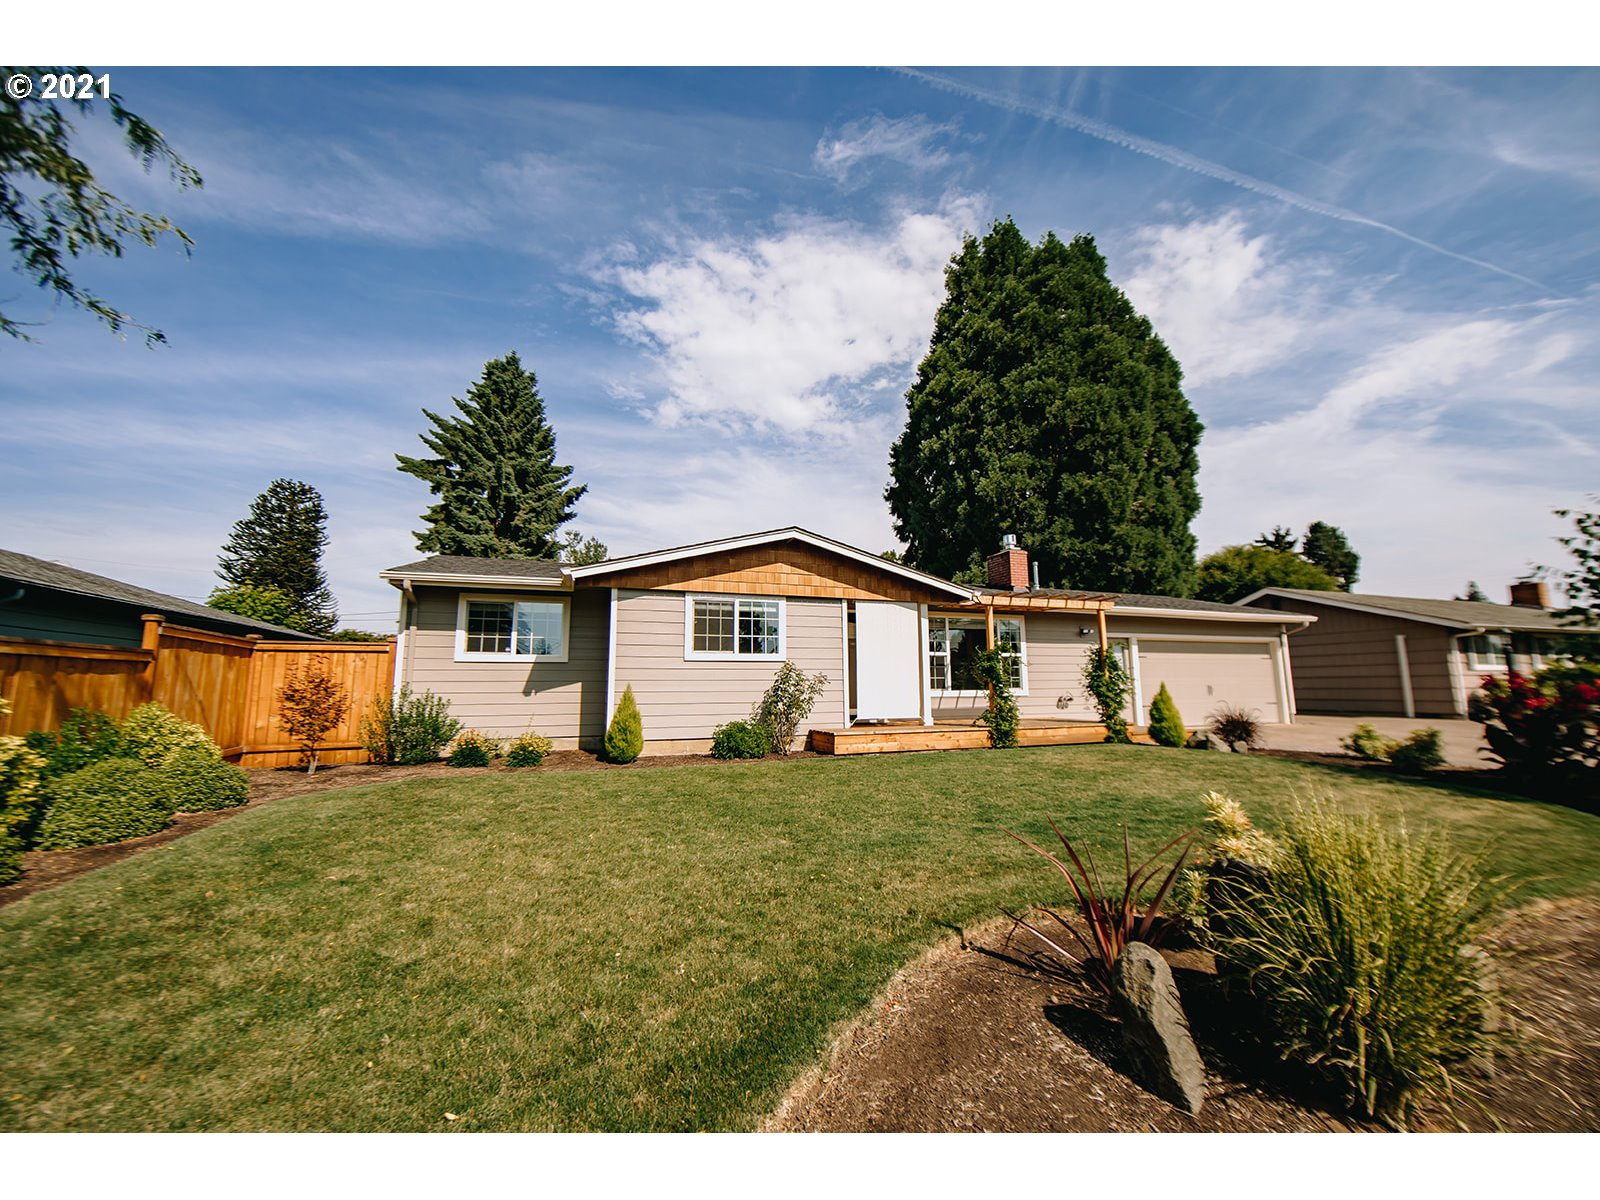 2797 3RD ST, Springfield OR 97477